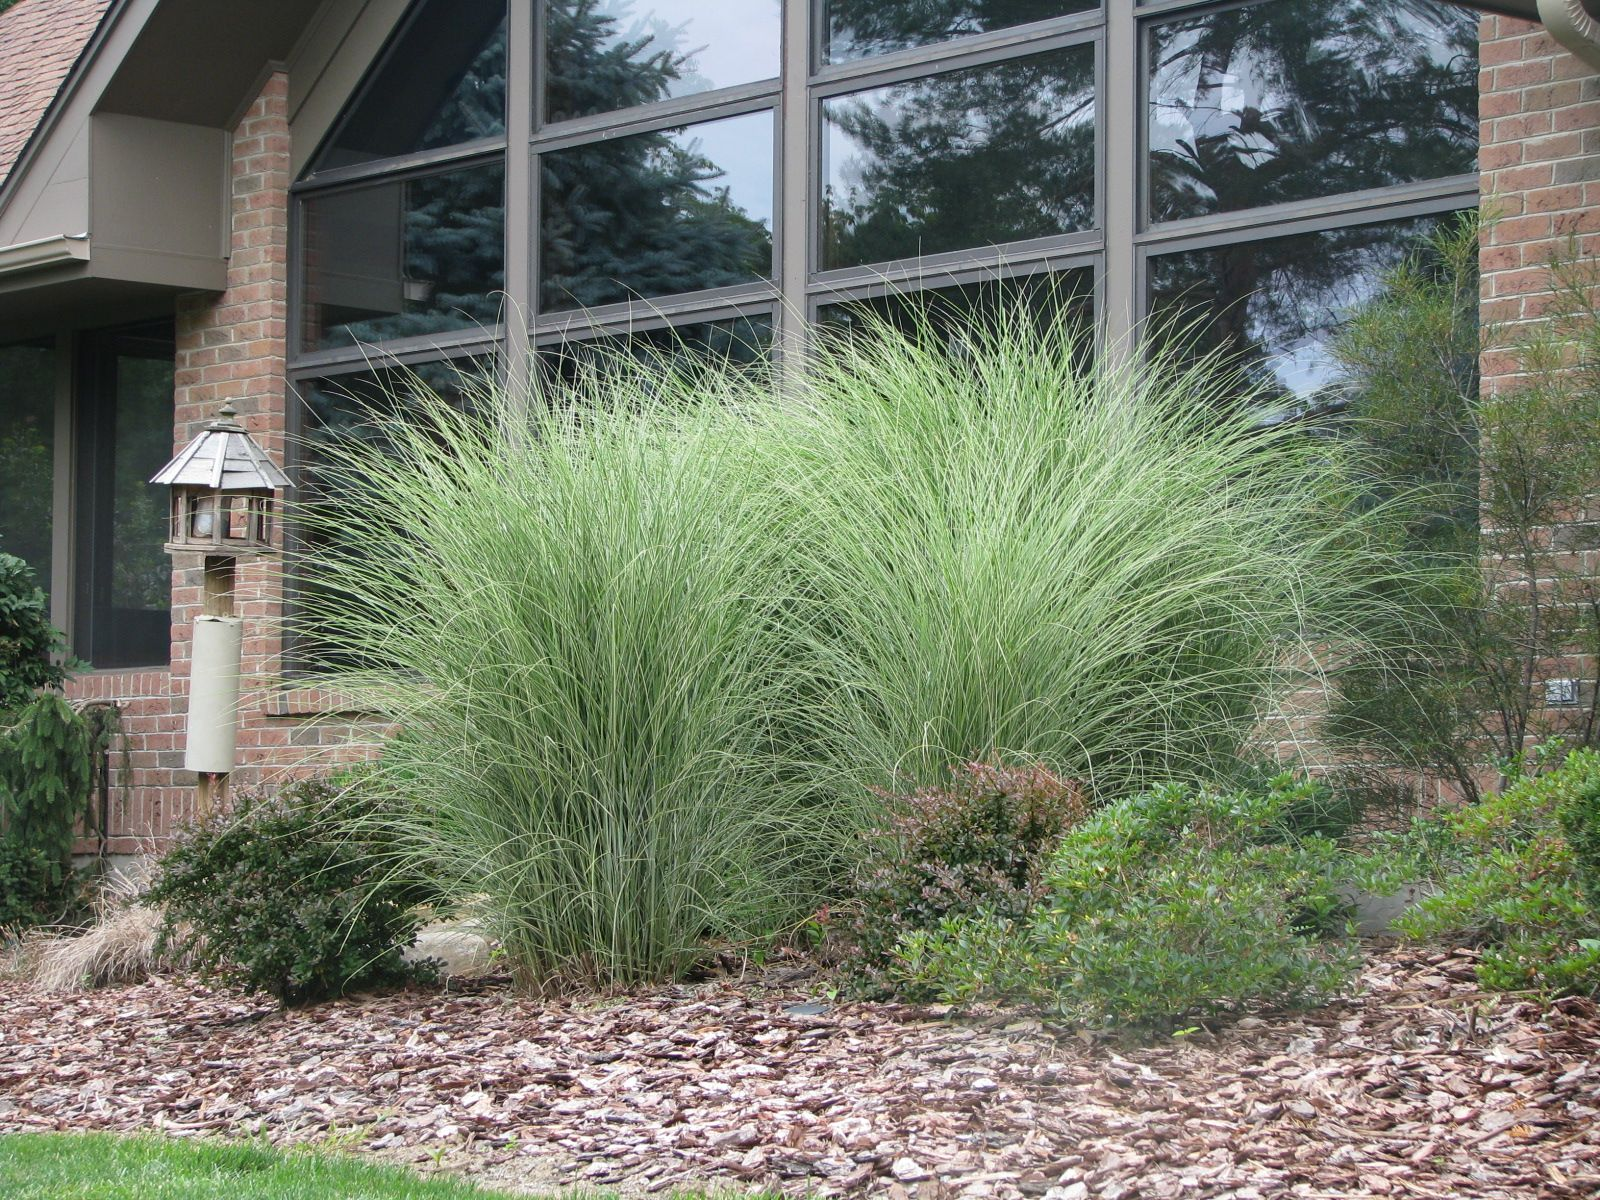 Grass random ornamental grass photos the alternative for Ornamental landscaping